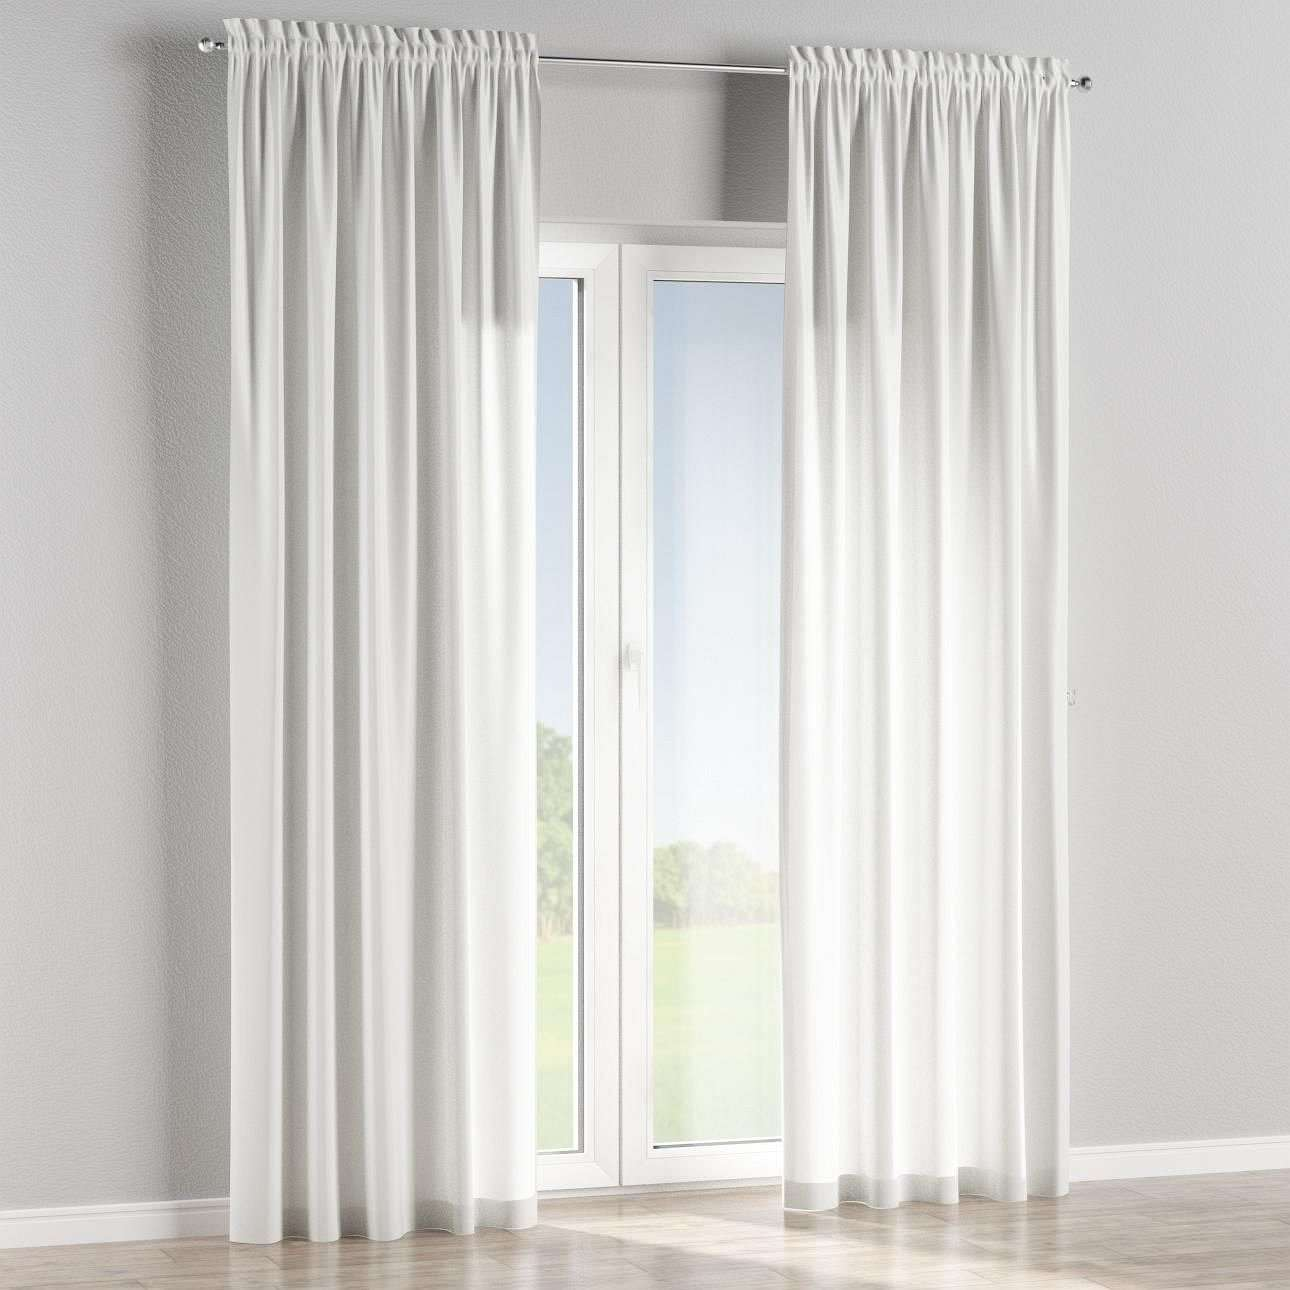 Slot and frill lined curtains in collection Cardiff, fabric: 136-28